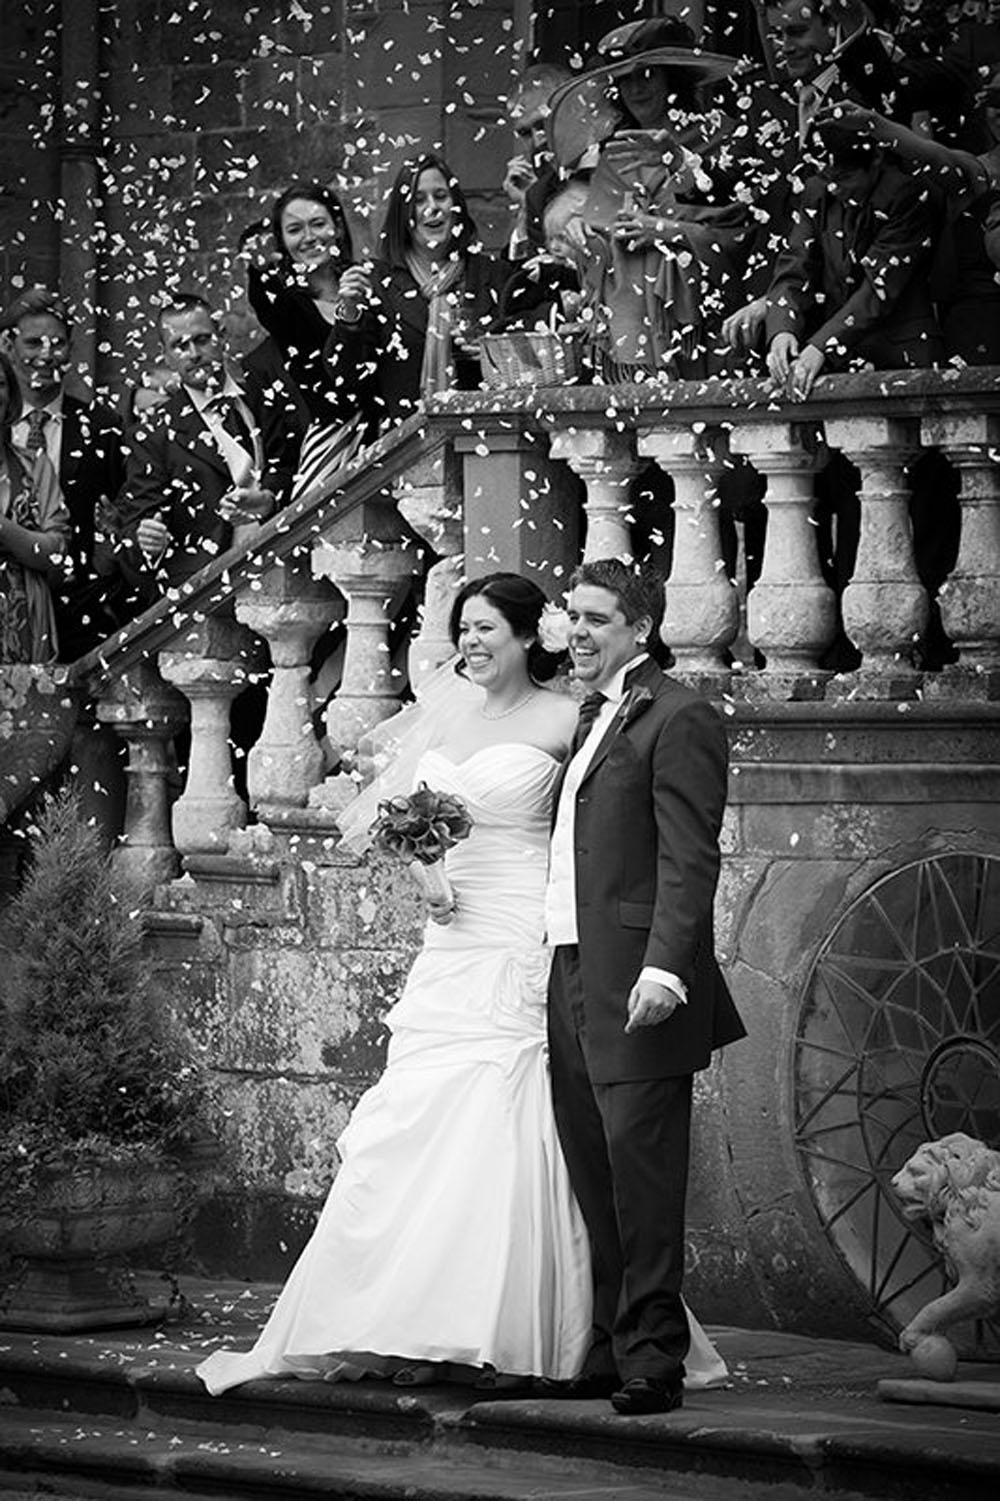 Confetti Moment - in the grand gardens of their venue using steps to arrange their guests